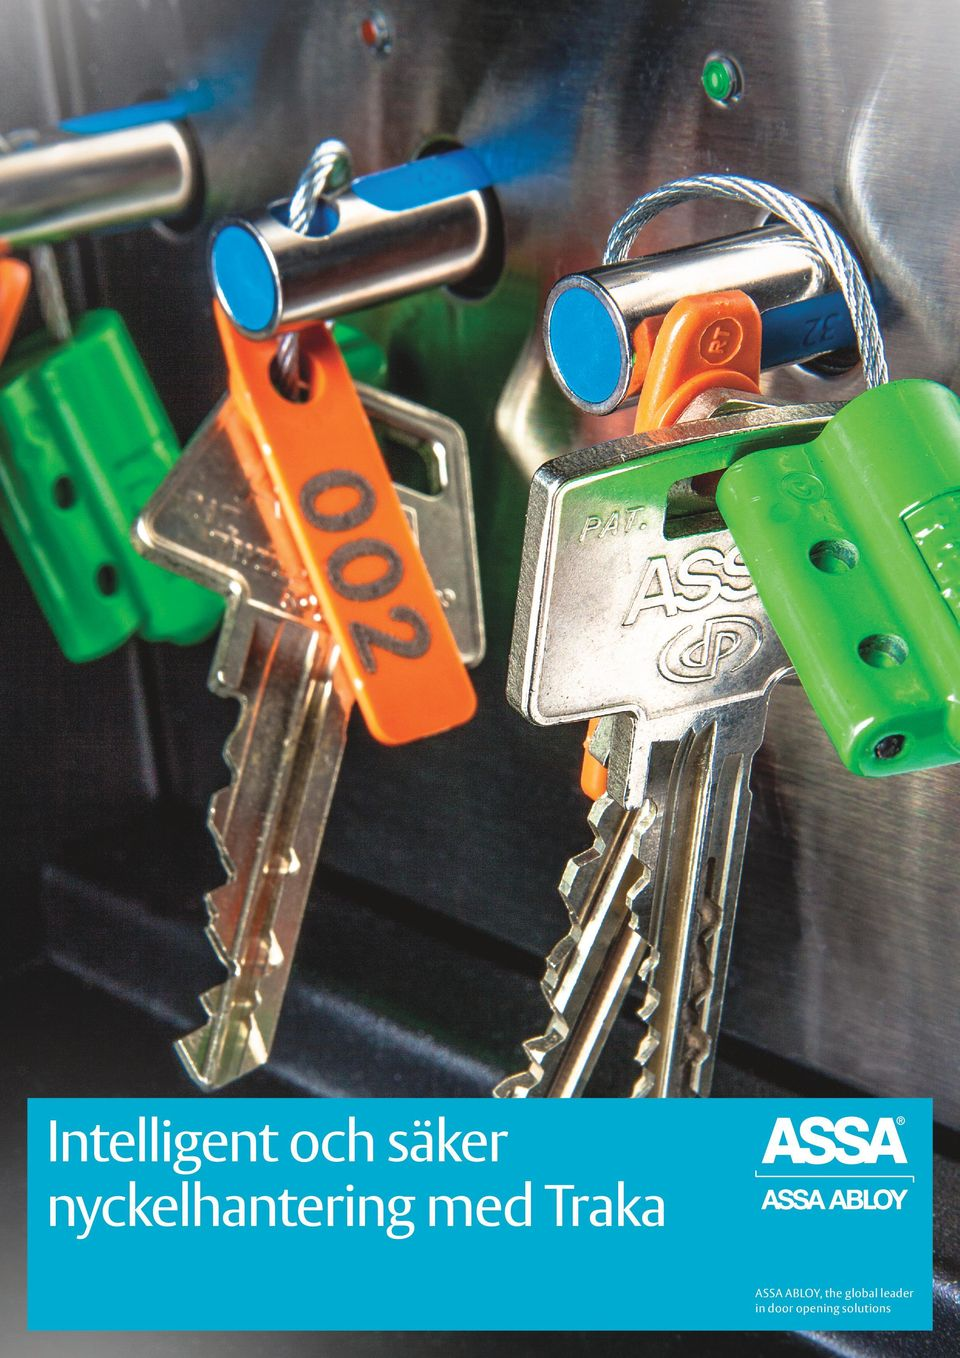 ASSA ABLOY, the global